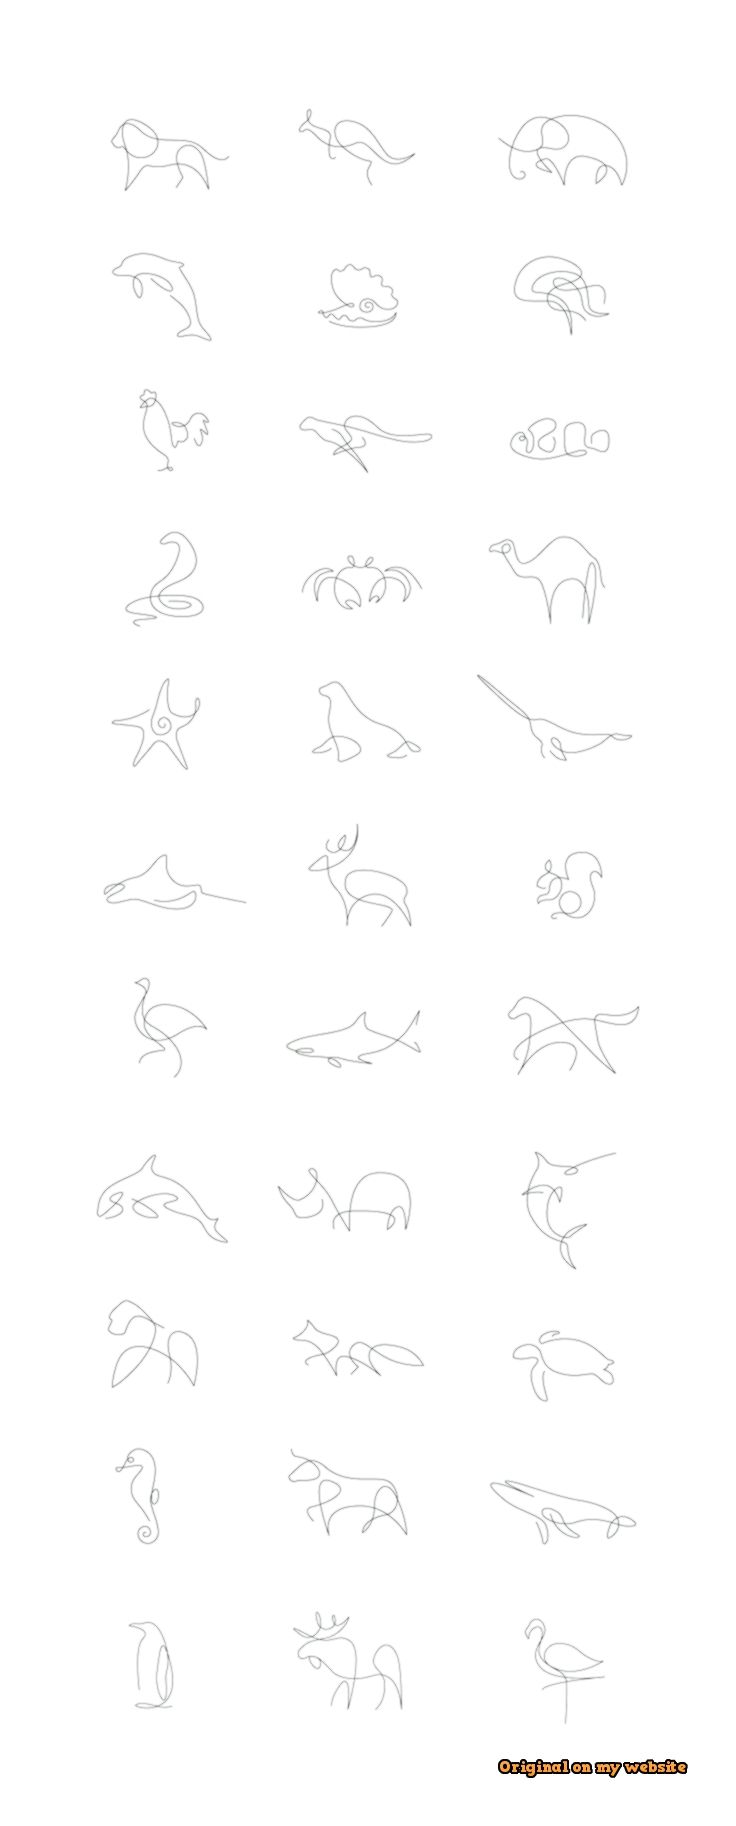 Drawing Art Tumblr How To Draw An Animal With Just A Single Line Steemit Artdrawingsaesthetic Ar One Line Animals One Line Tattoo Continuous Line Tattoo